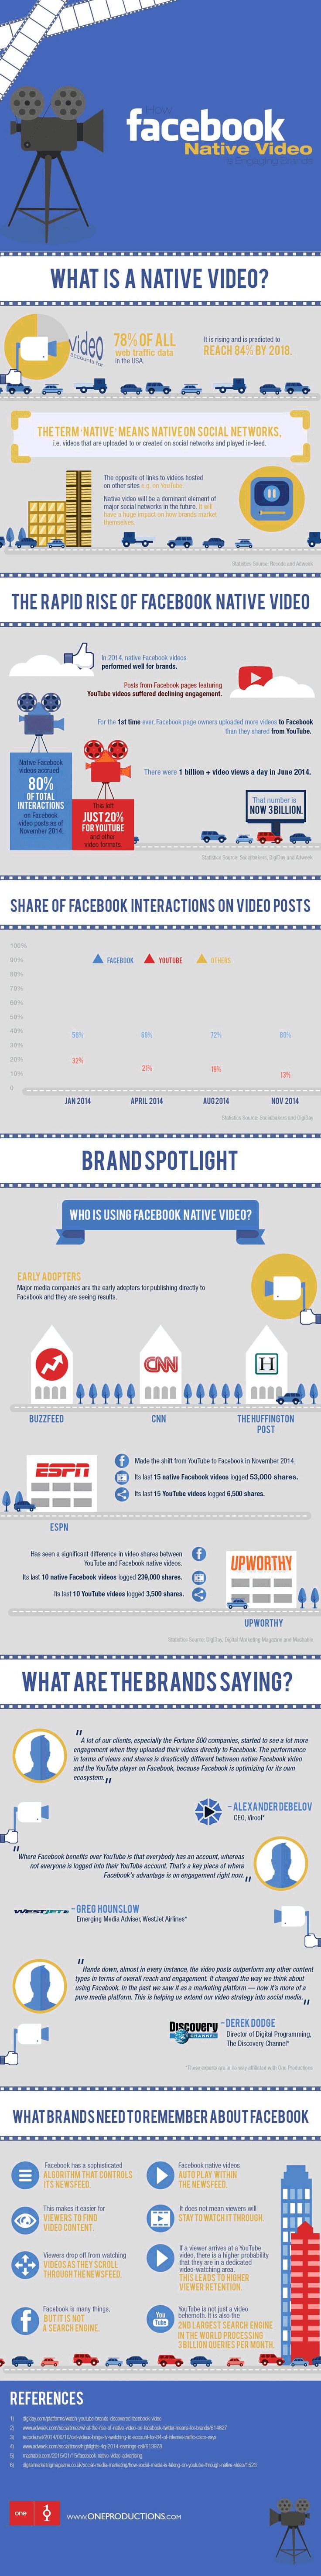 Why You Should Be Using Facebook Native Video (Infographic)